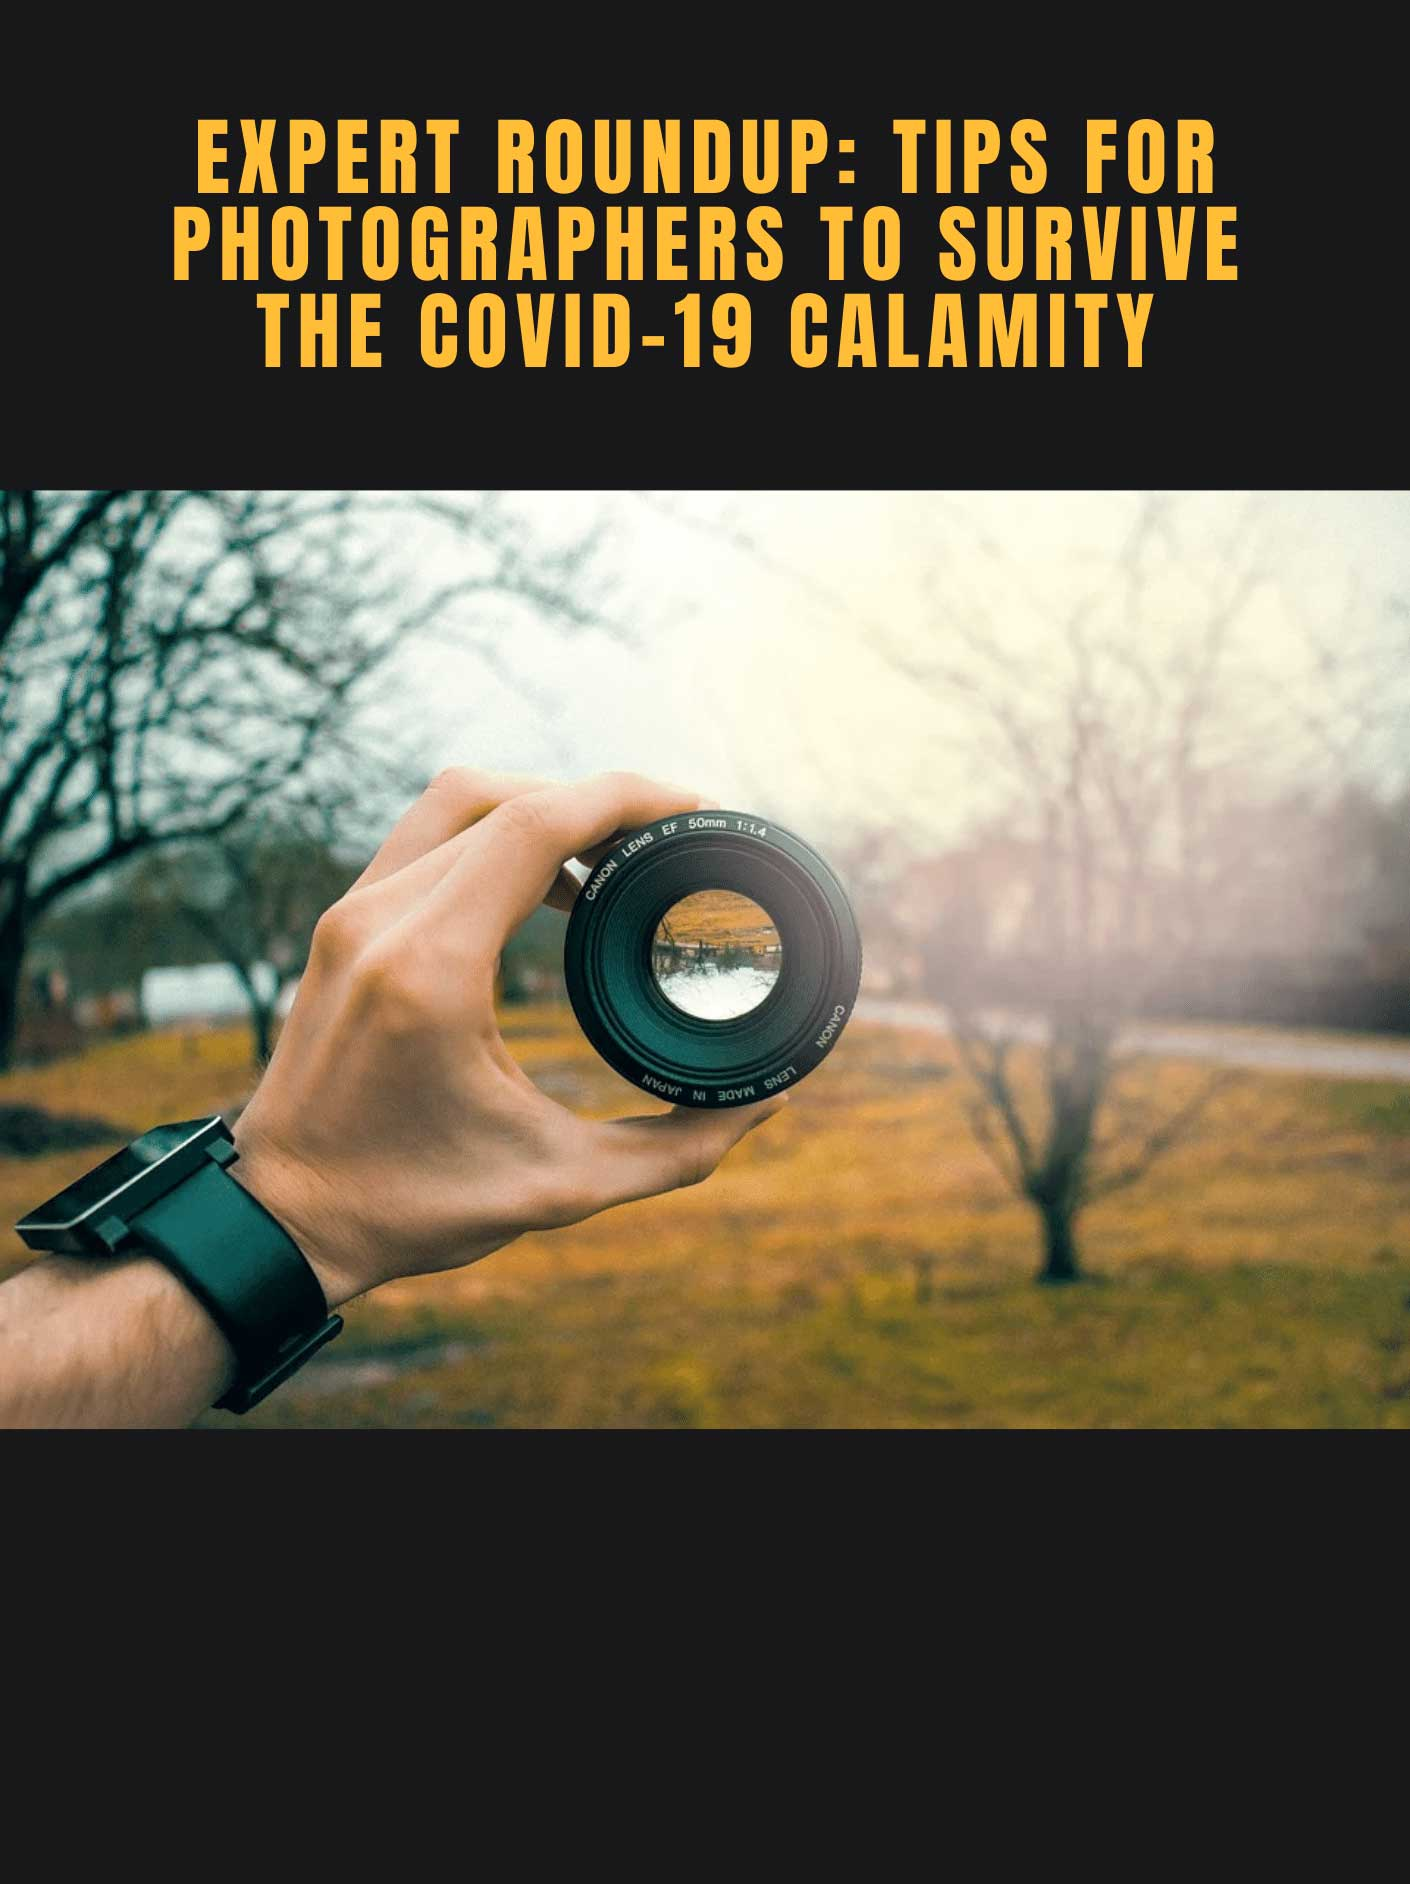 https://www.offshoreclippingpath.com/wp-content/uploads/2020/05/Expert-Photographers-Share-Their-Tips-on-How-to-Manage-the-COVID-19-Calamity.jpg